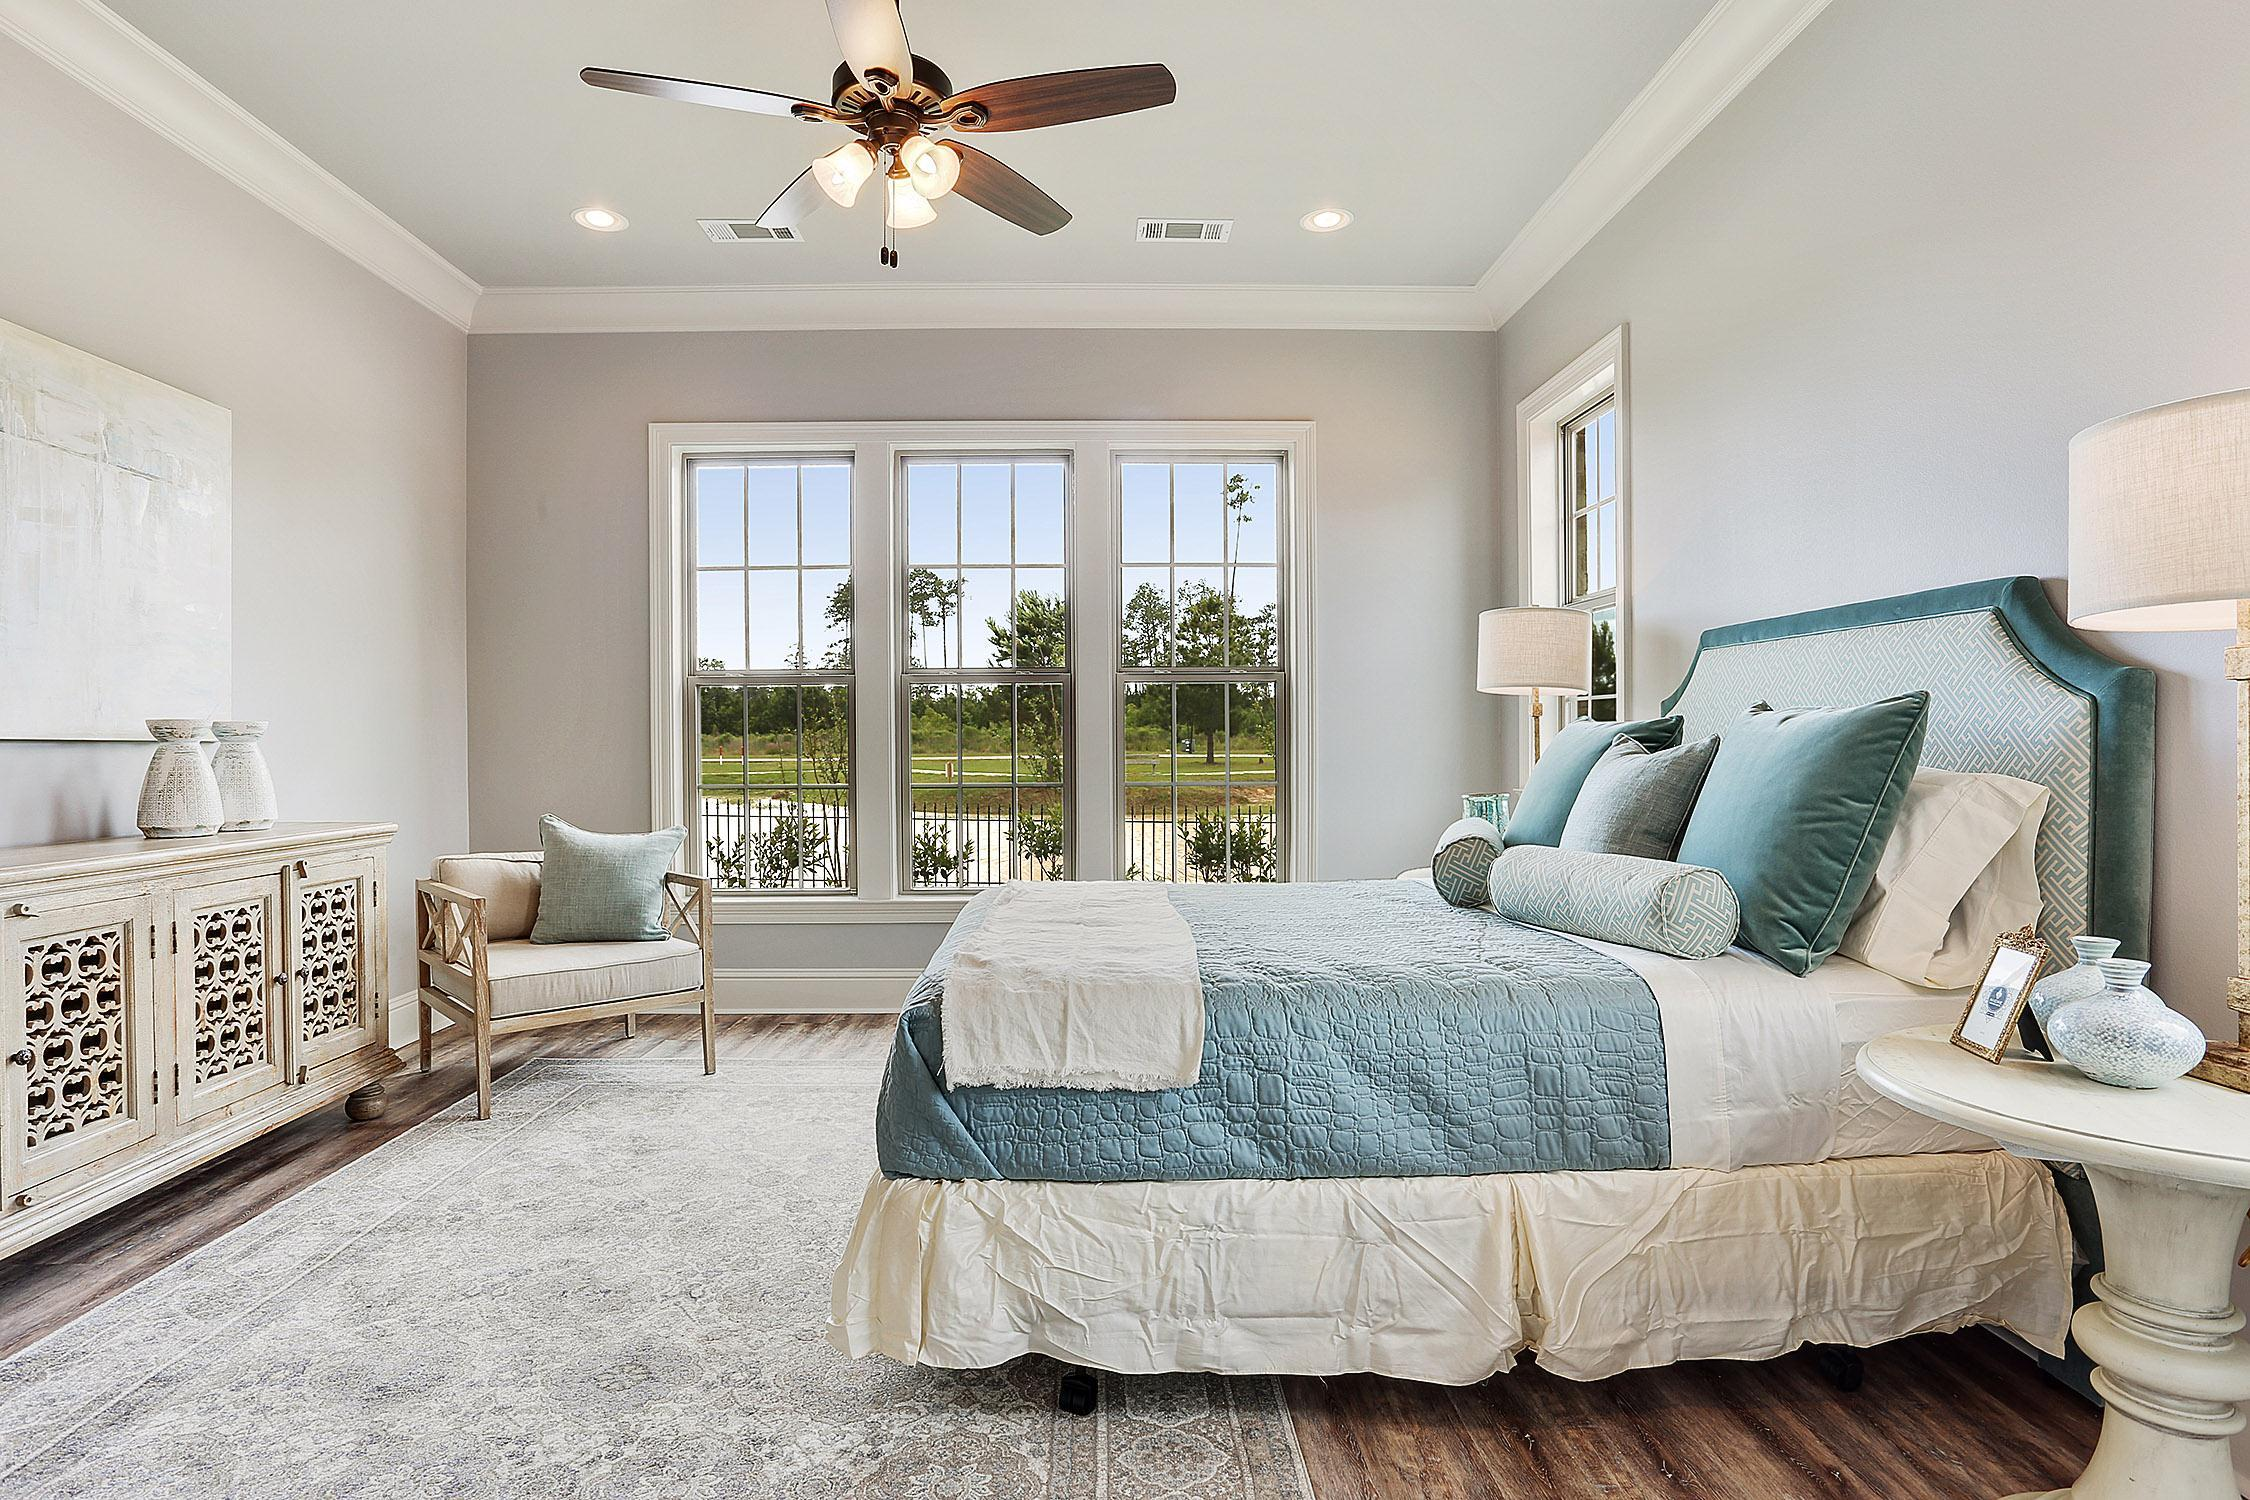 Bedroom featured in the Caroline B By Highland Homes in New Orleans, LA